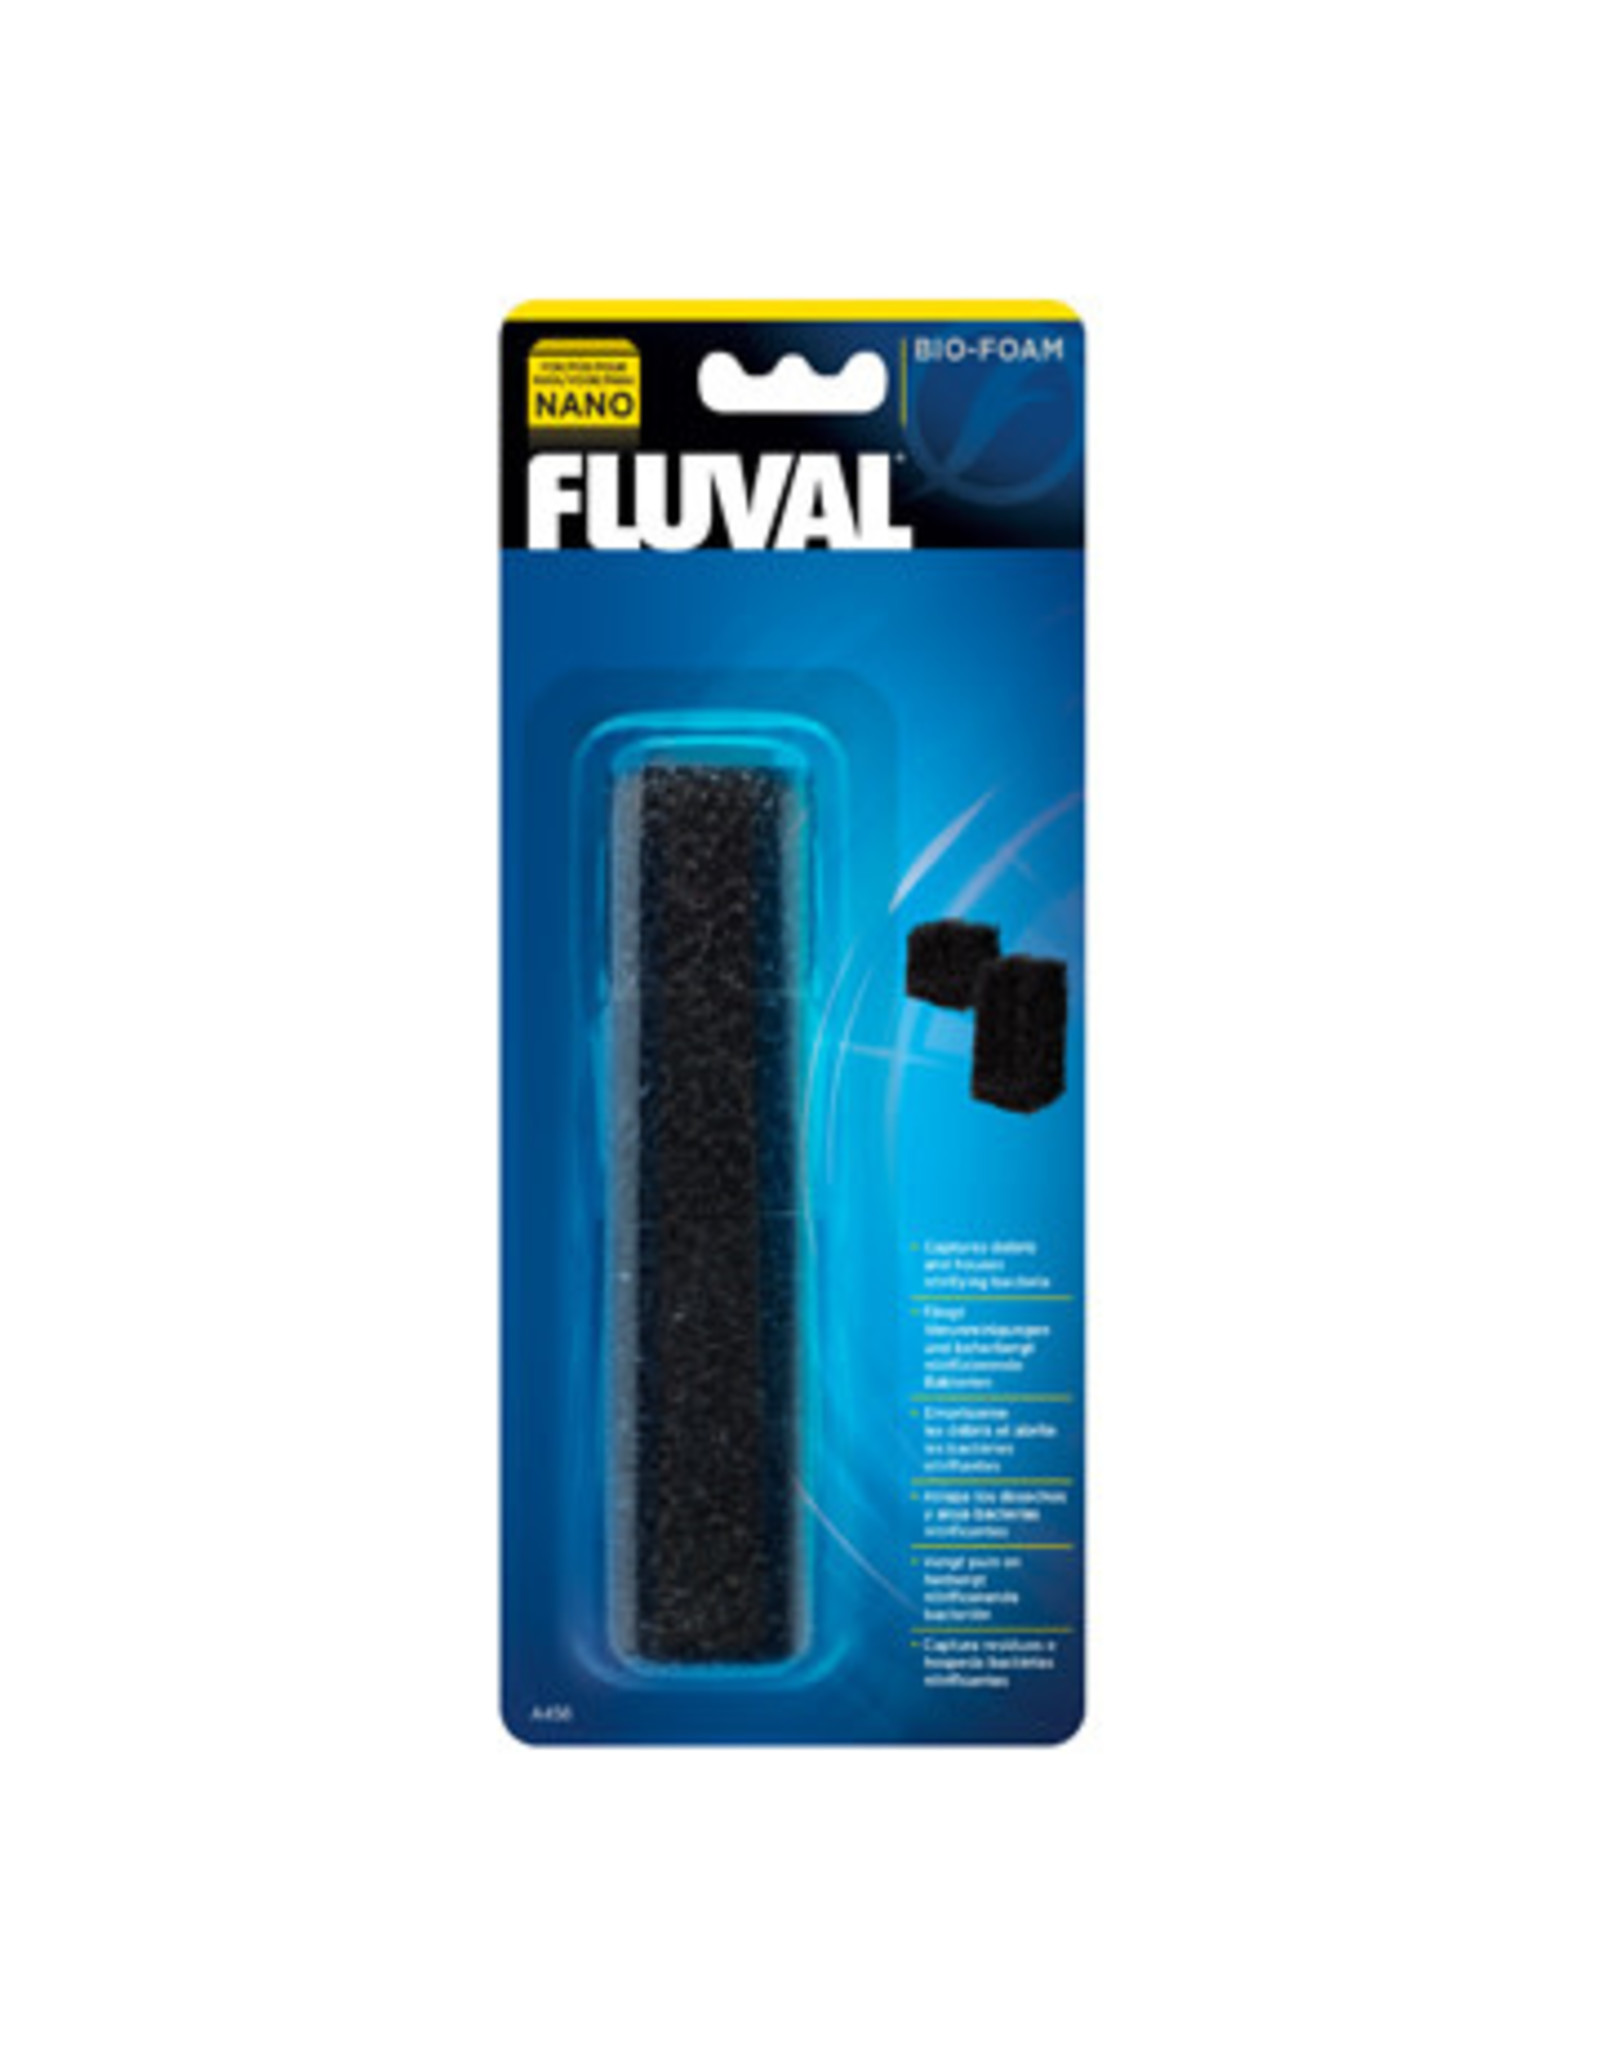 Fluval Fluval Nano Aquarium Filter Bio-Foam